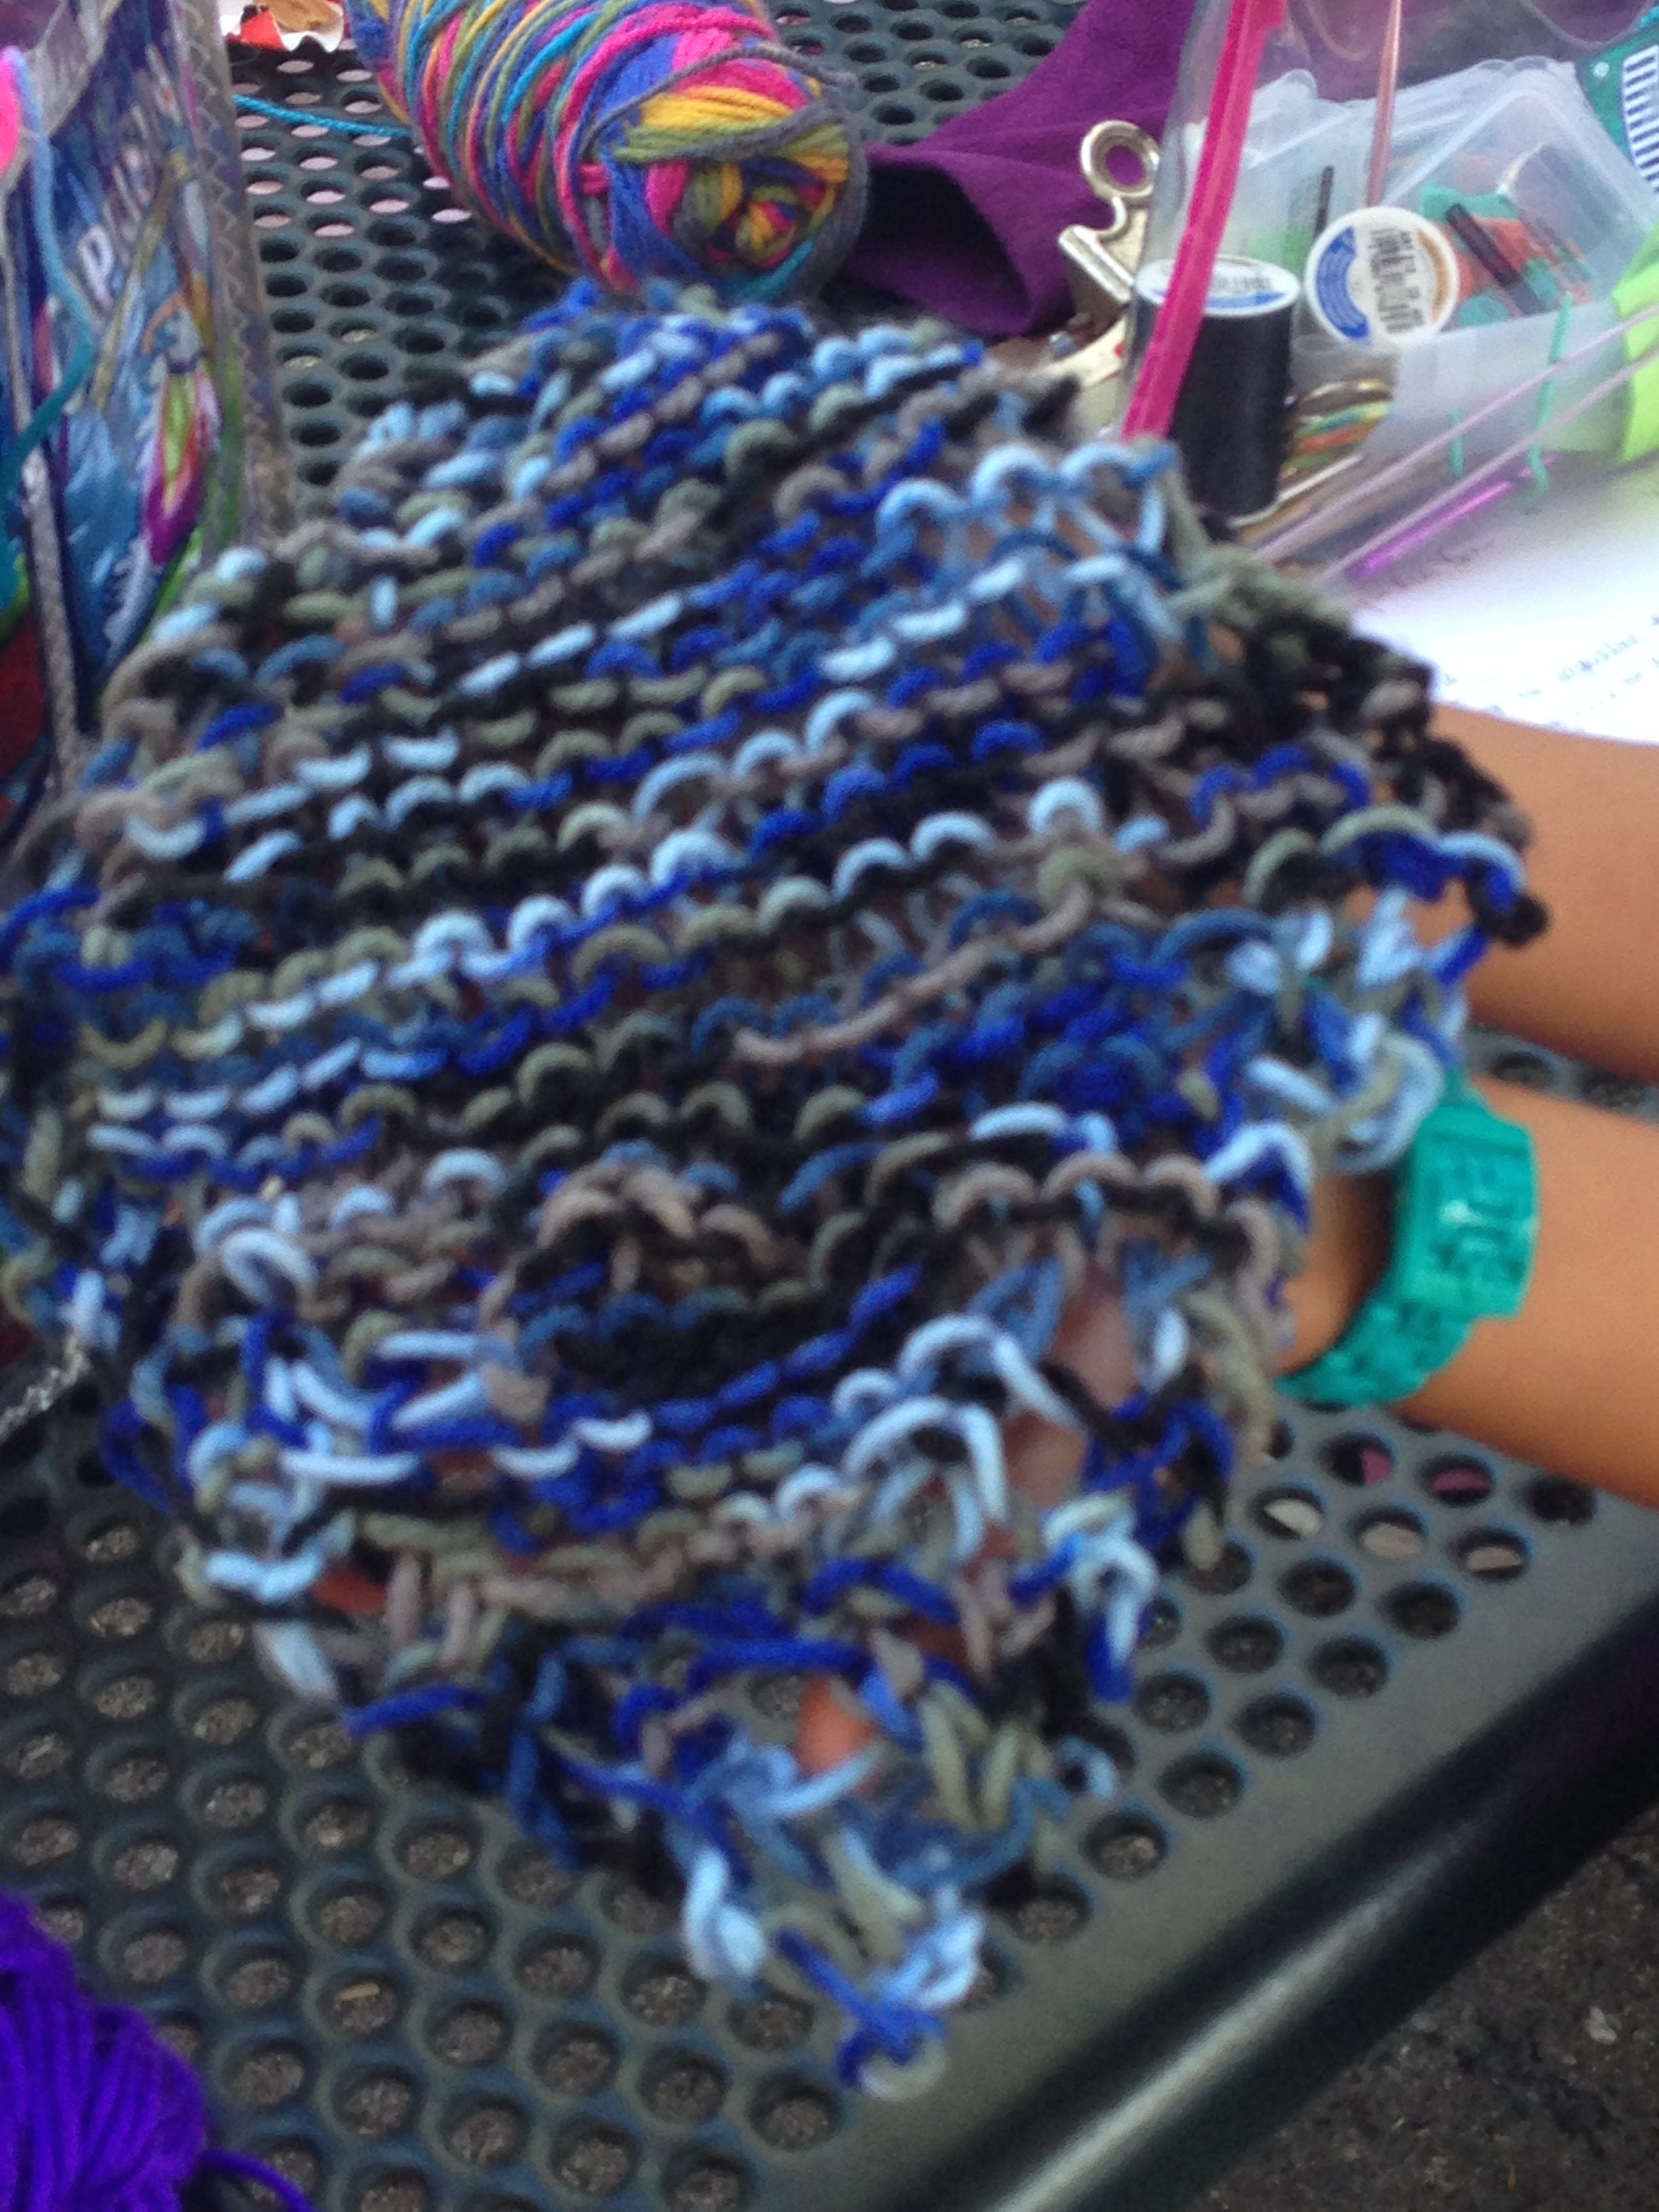 3rd grader grandmother's dishcloth for her grandmother.  Sweet!